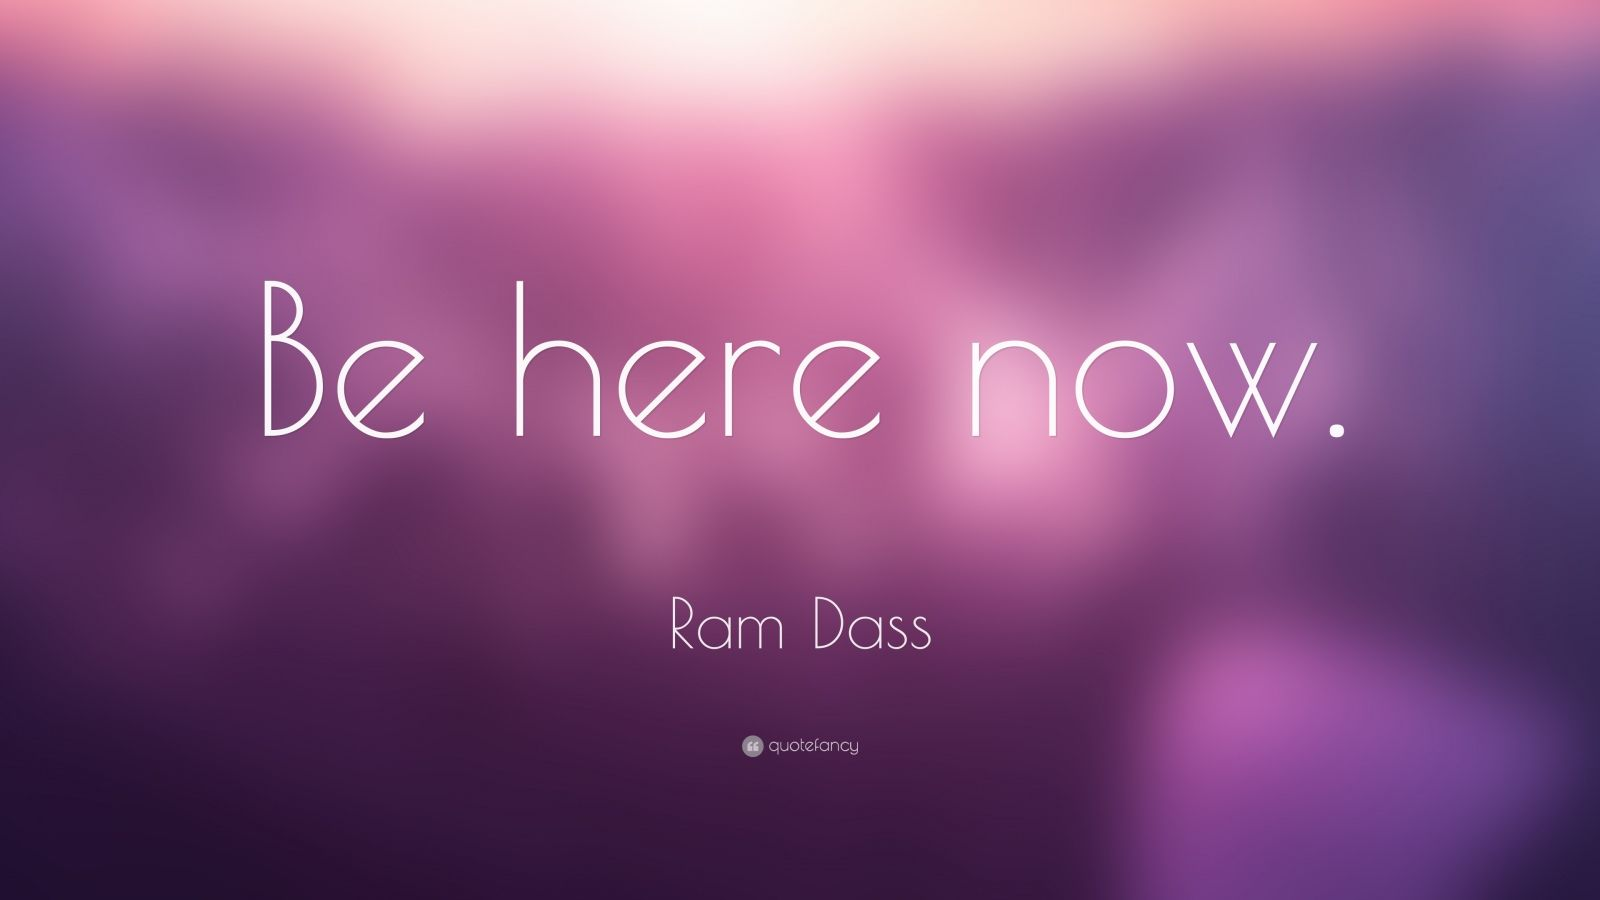 Swami Vivekananda Quotes Wallpaper Ram Dass Quote Be Here Now 26 Wallpapers Quotefancy